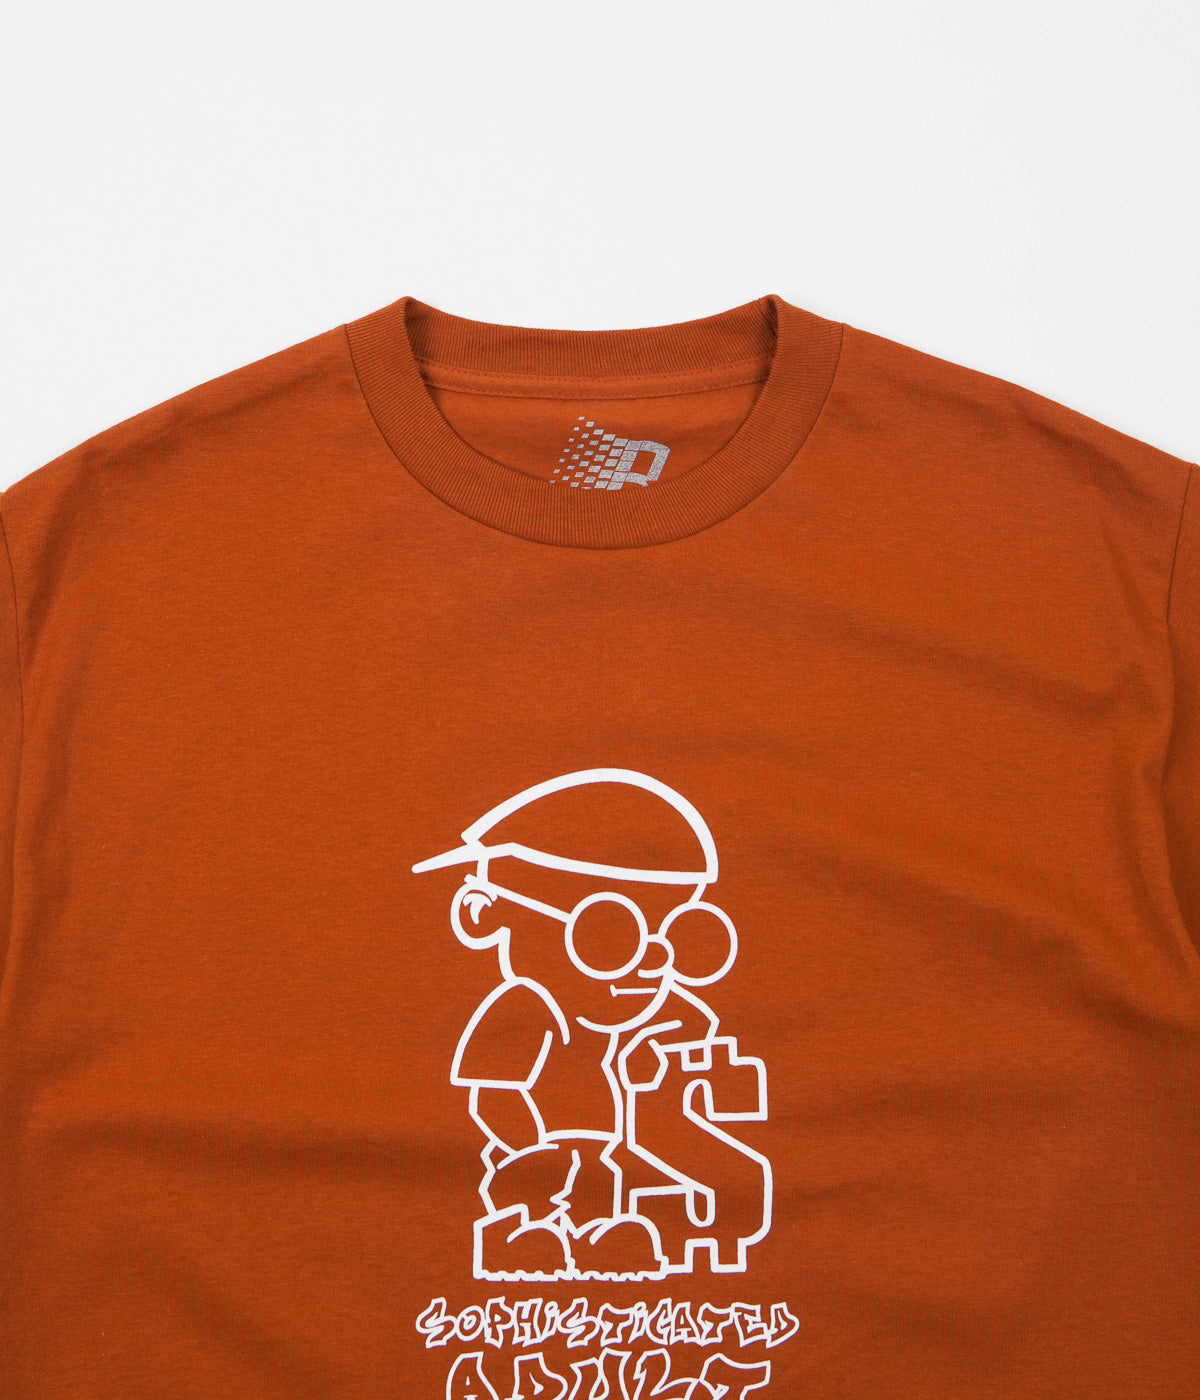 Bronze 56K Sophisticated Guy T-Shirt - Texas Orange / White